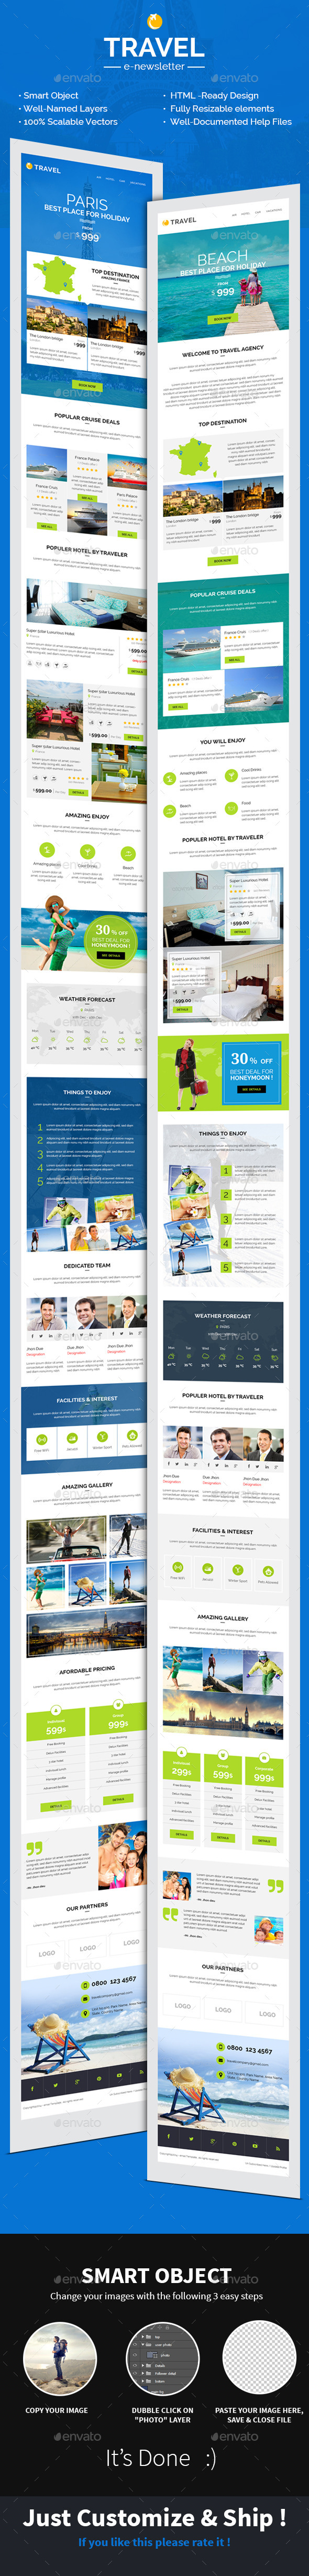 GraphicRiver Travel Hotel E-newsletter PSD Template 9945884